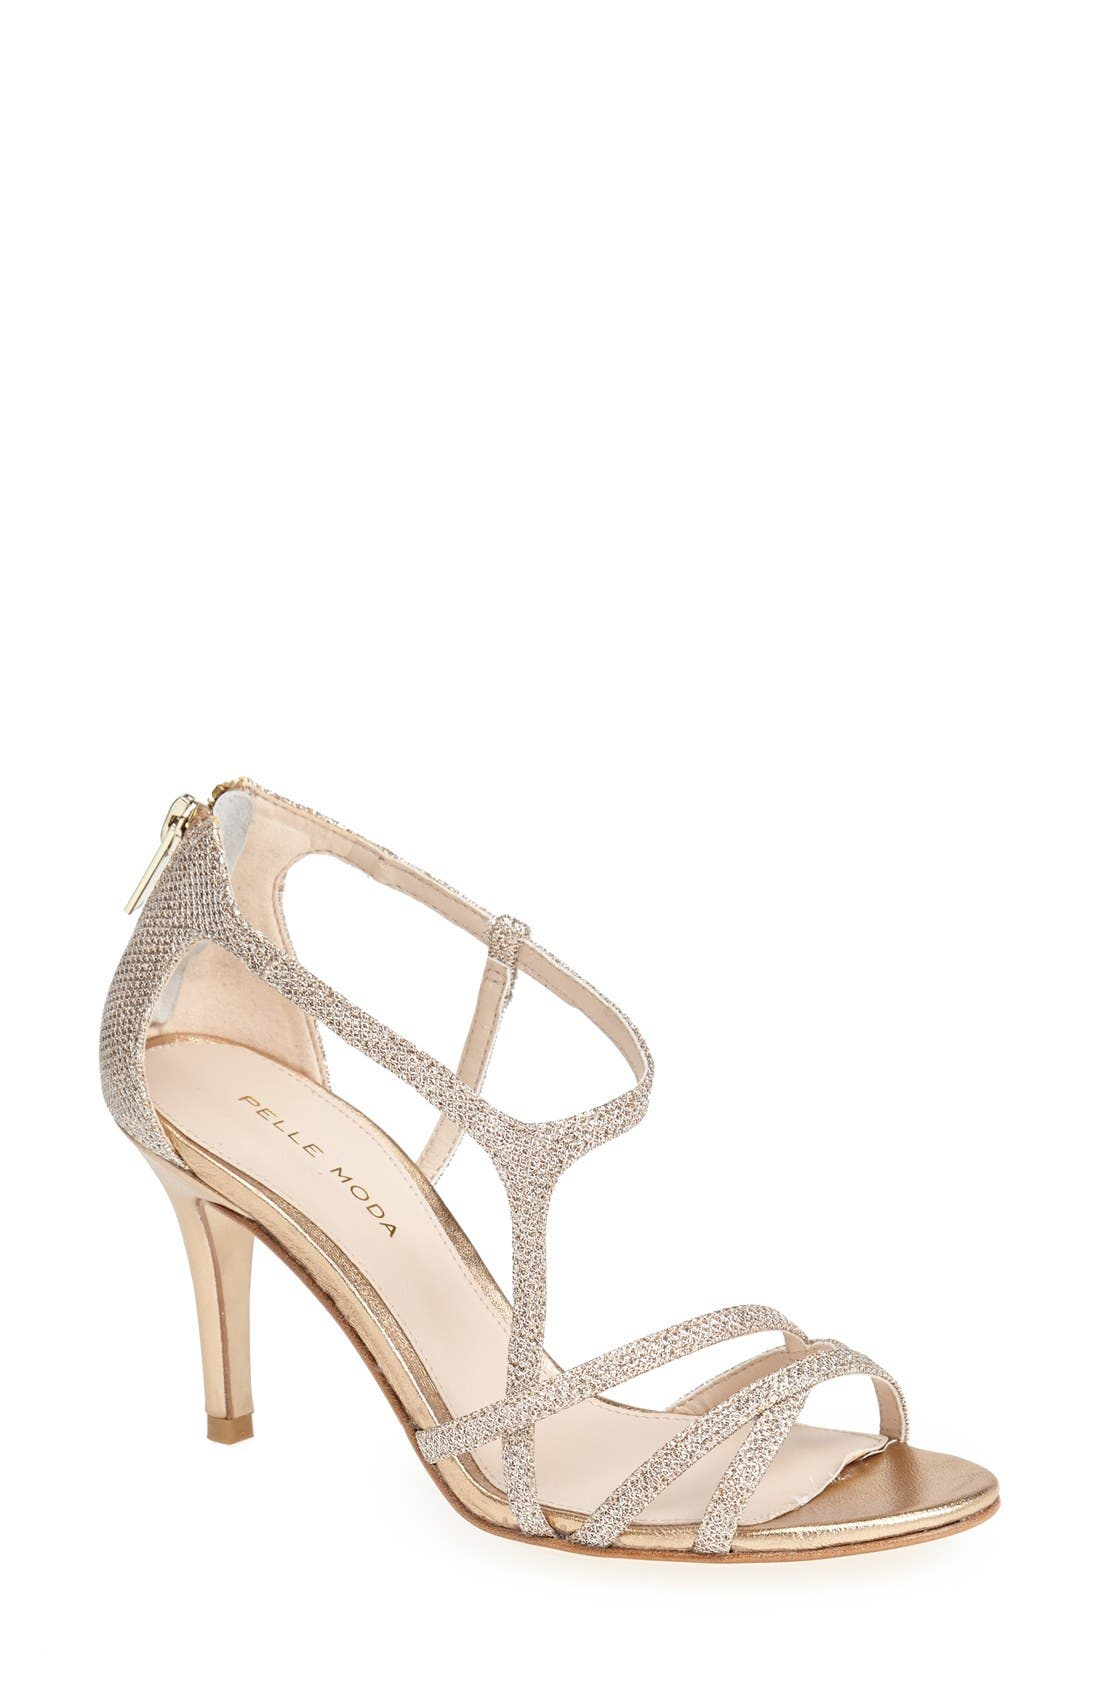 'Ruby' Strappy Sandal,                         Main,                         color, 710